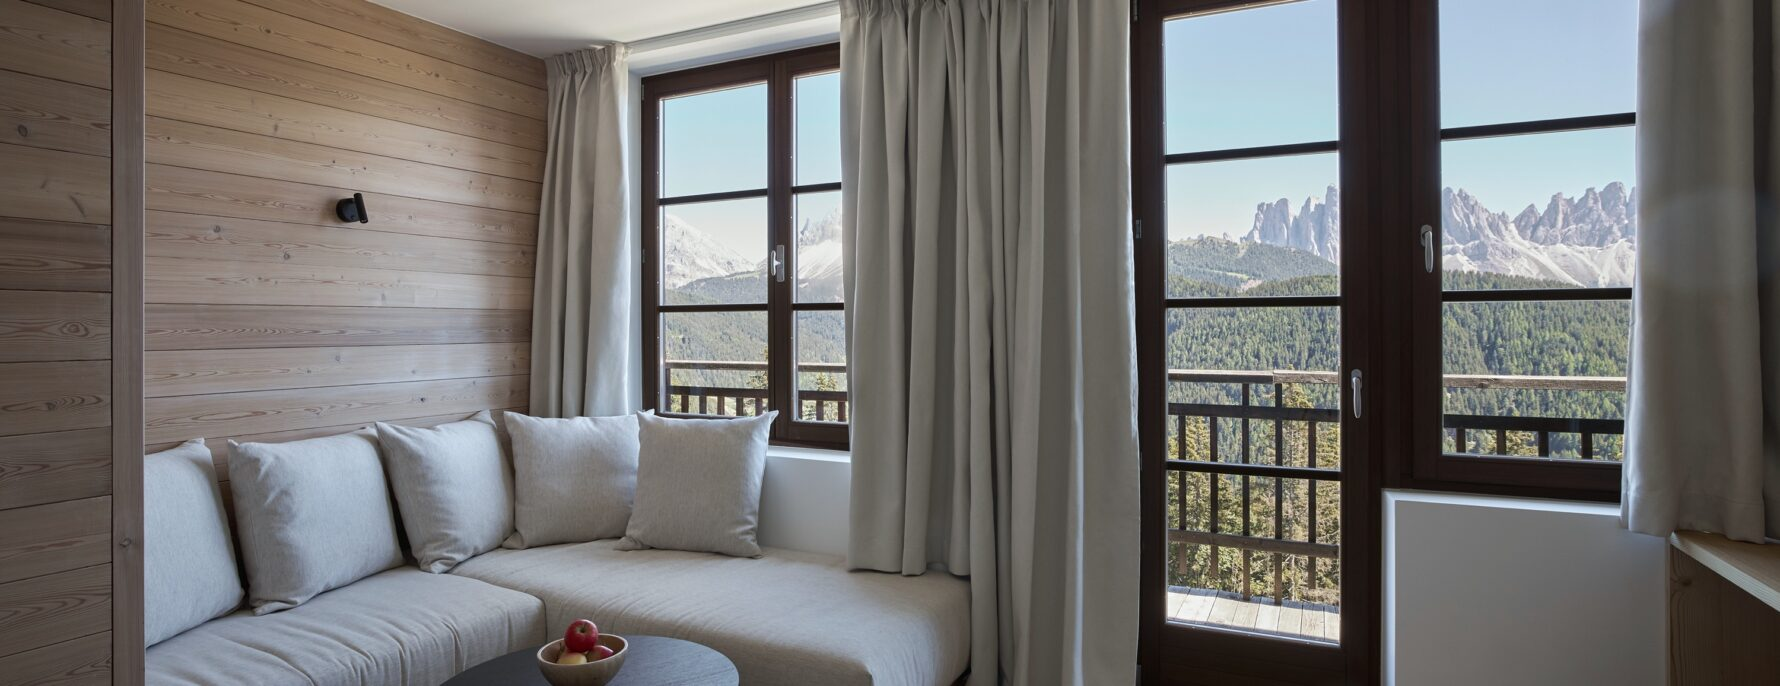 Nest Italy: Suite in Wellness Hotel